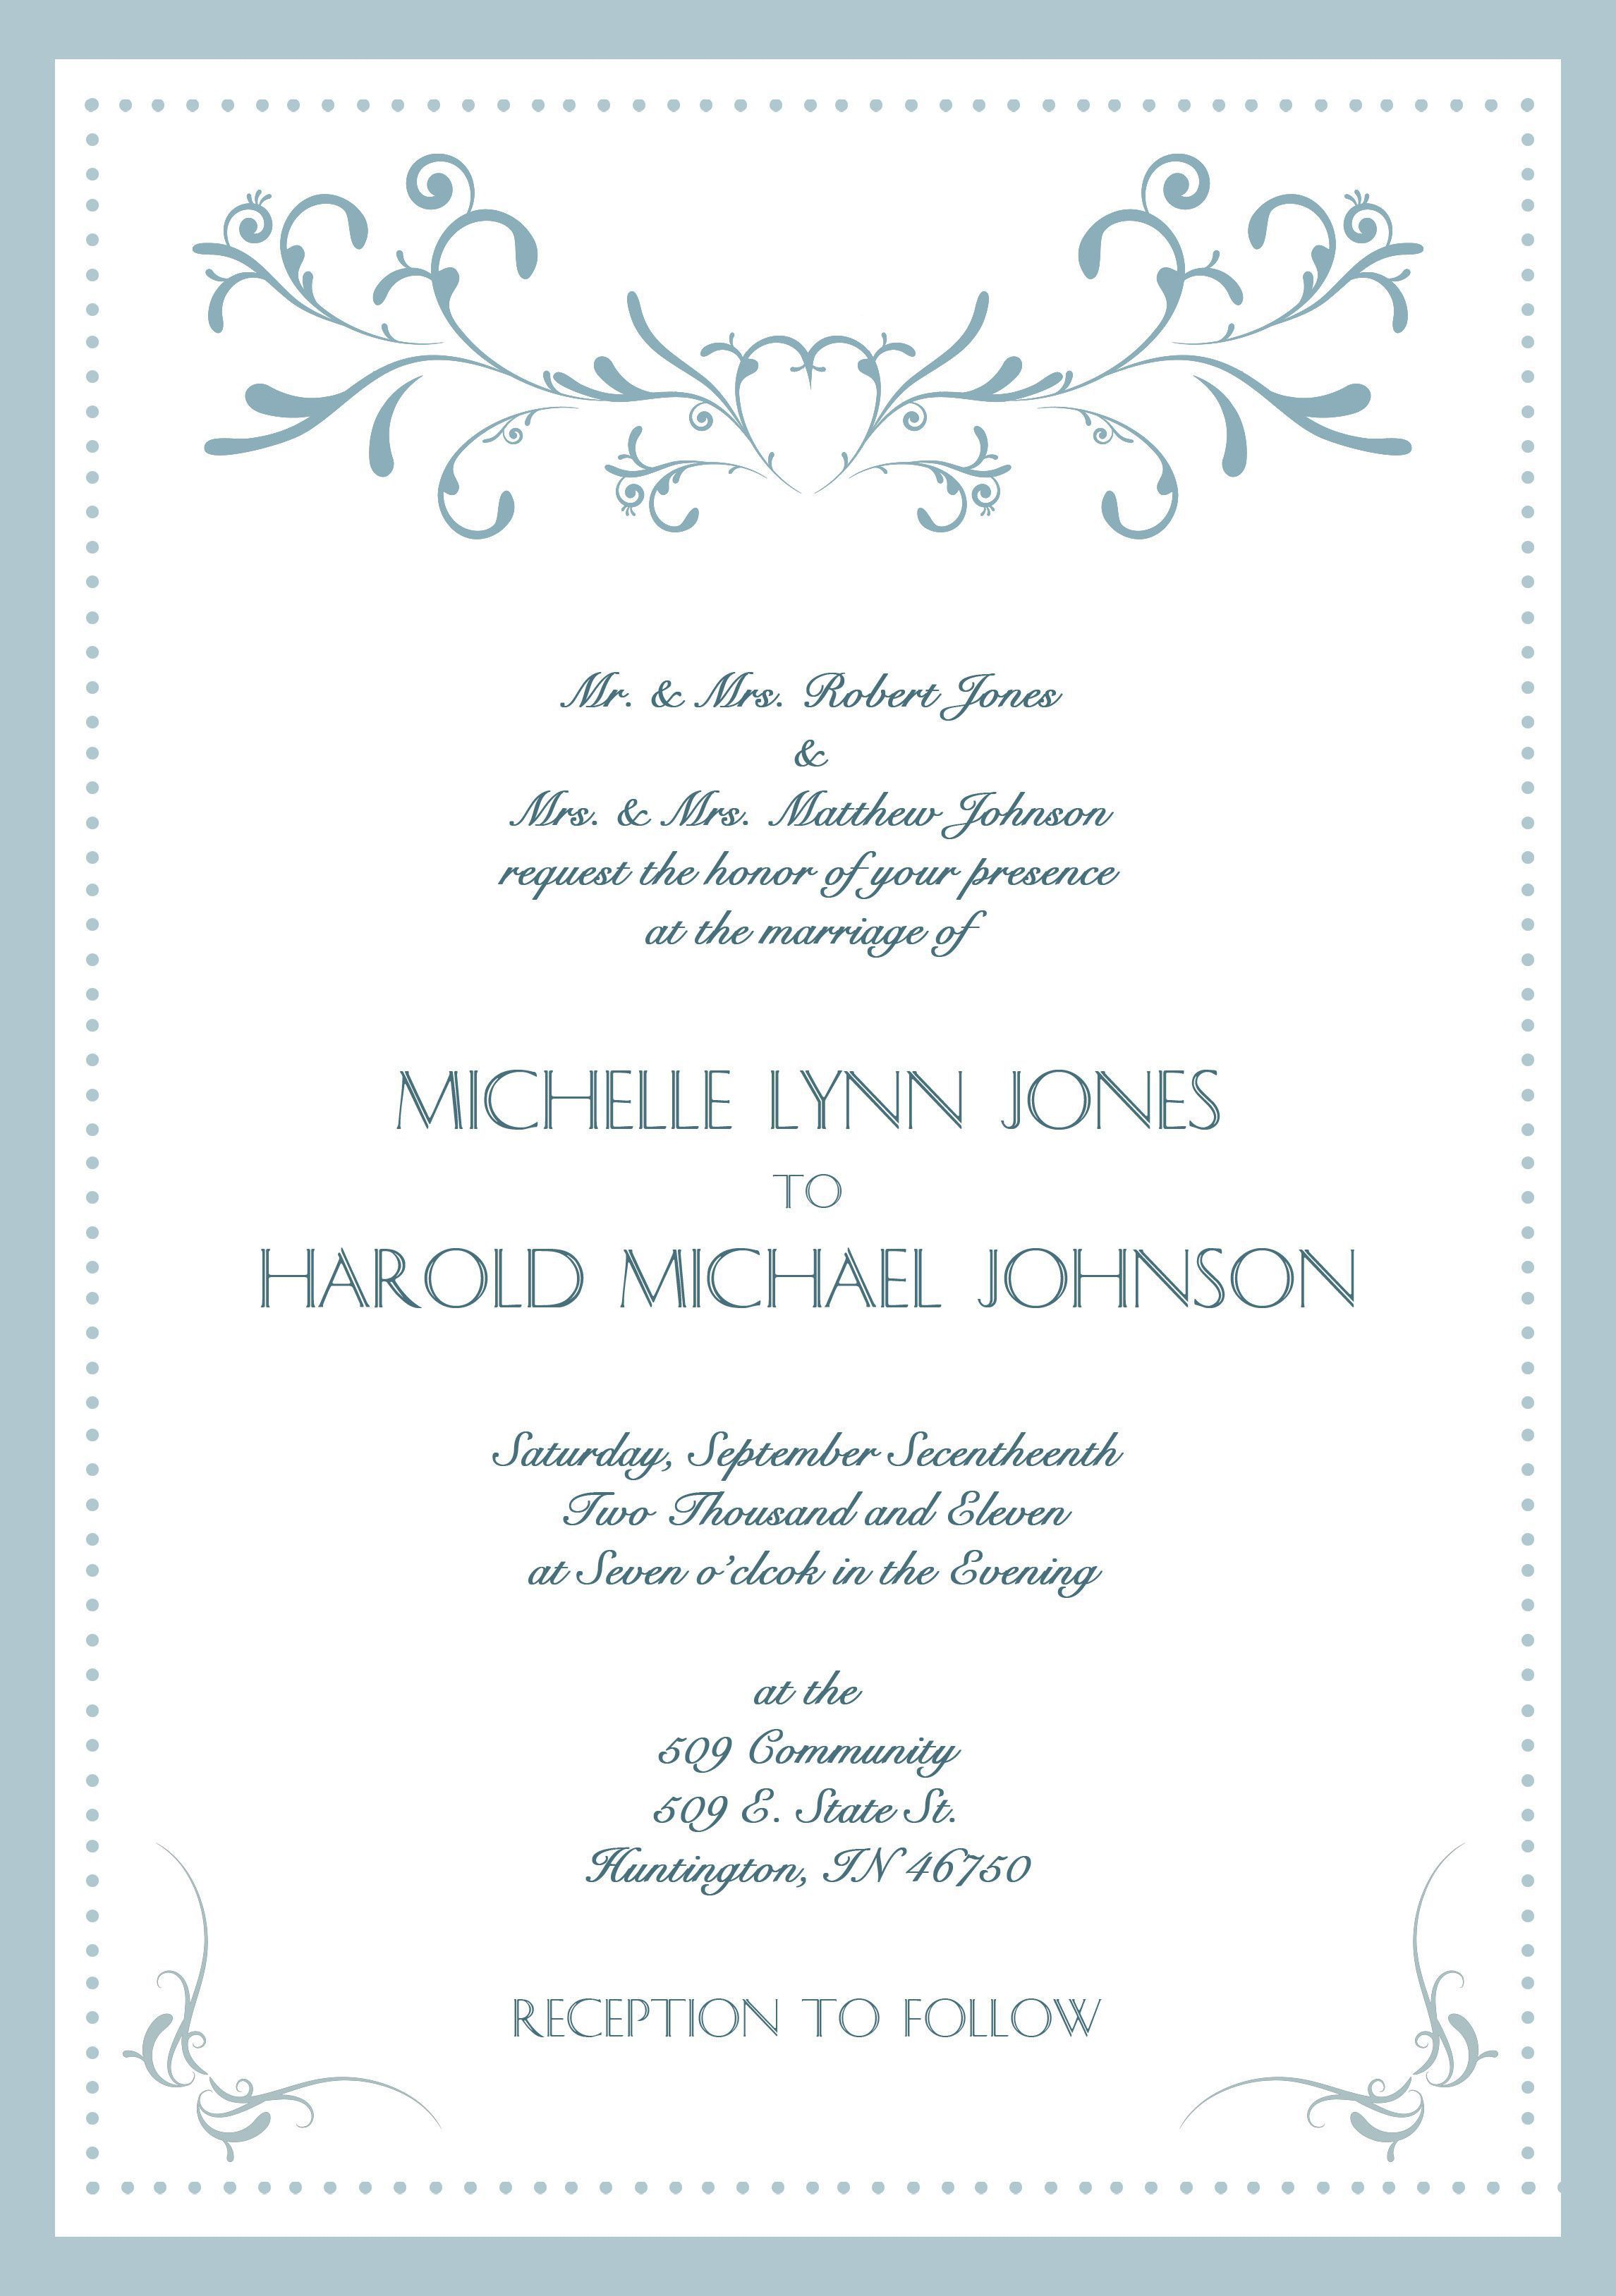 Samples Of Wedding Invitations Cards Wedding Invitations Cards ...